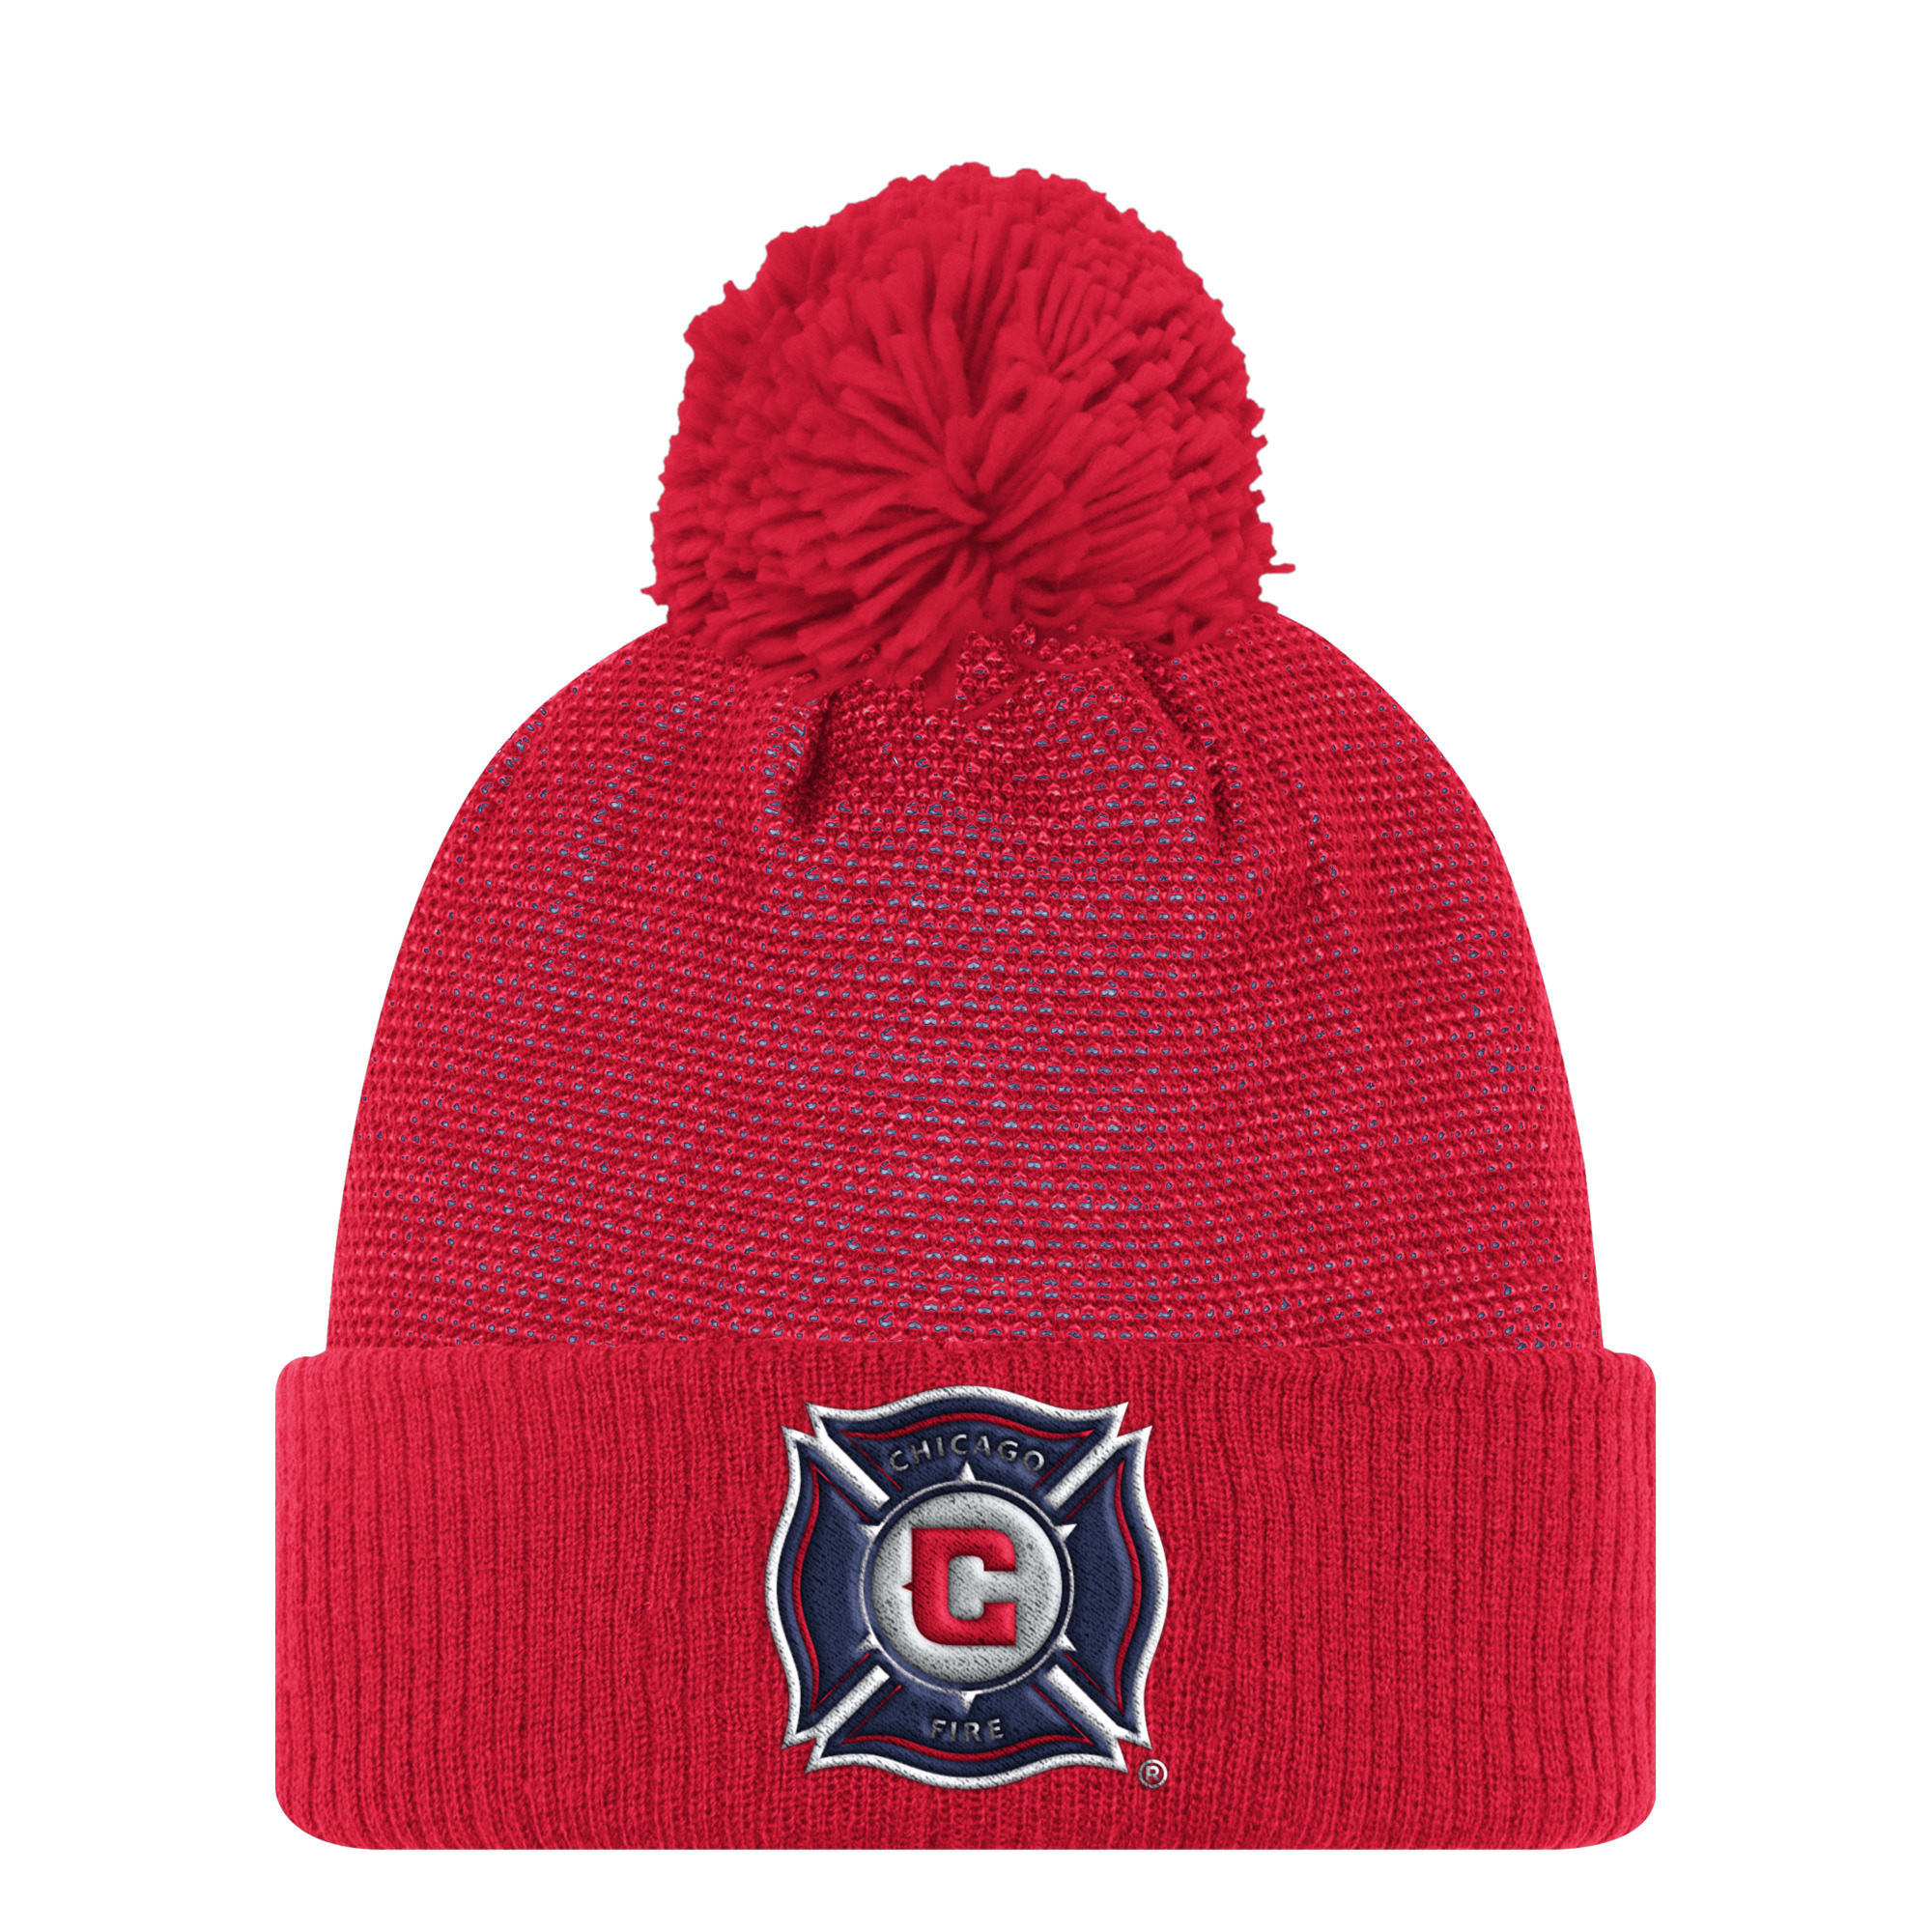 Chicago Fire Adidas MLS 2017 Authentic Cuffed Knit Hat with Pom